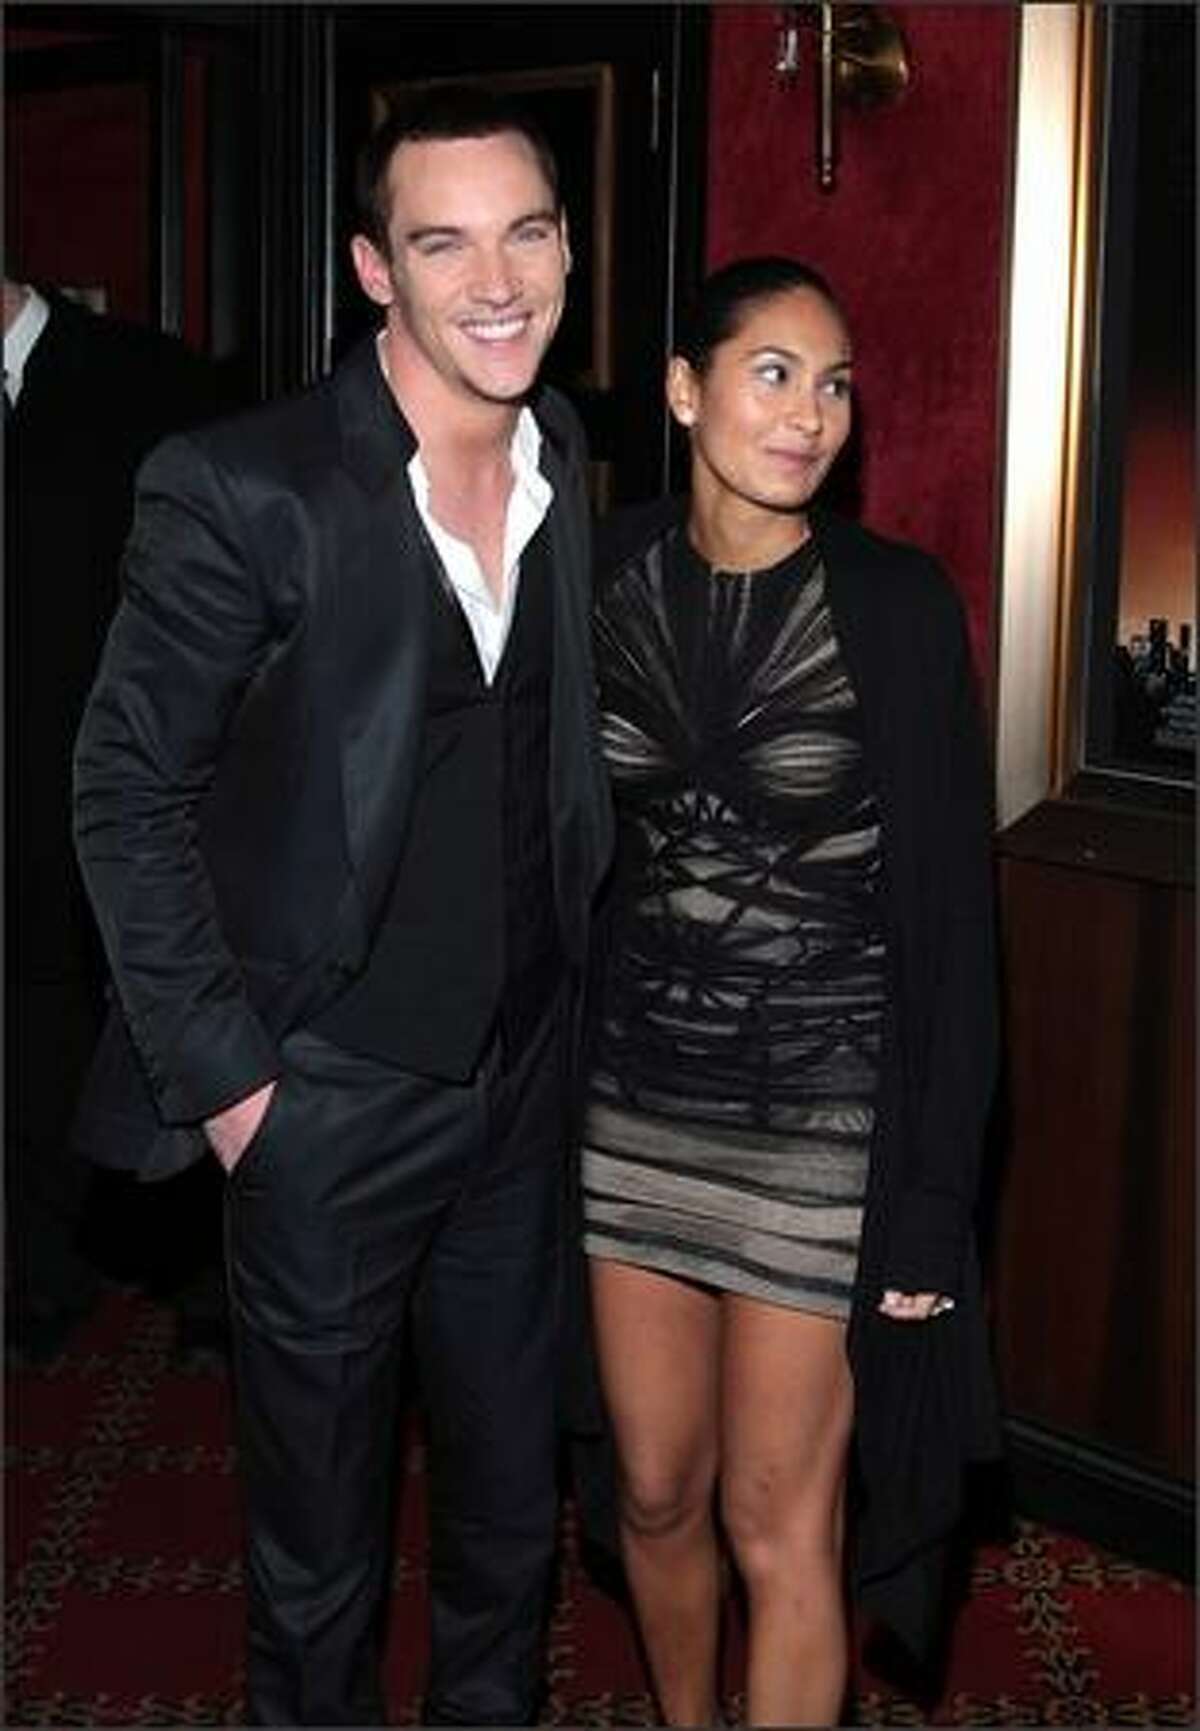 Actor Jonathan Rhys Meyers and Reena Hammer arrive at the premiere of Warner Bros. Pictures